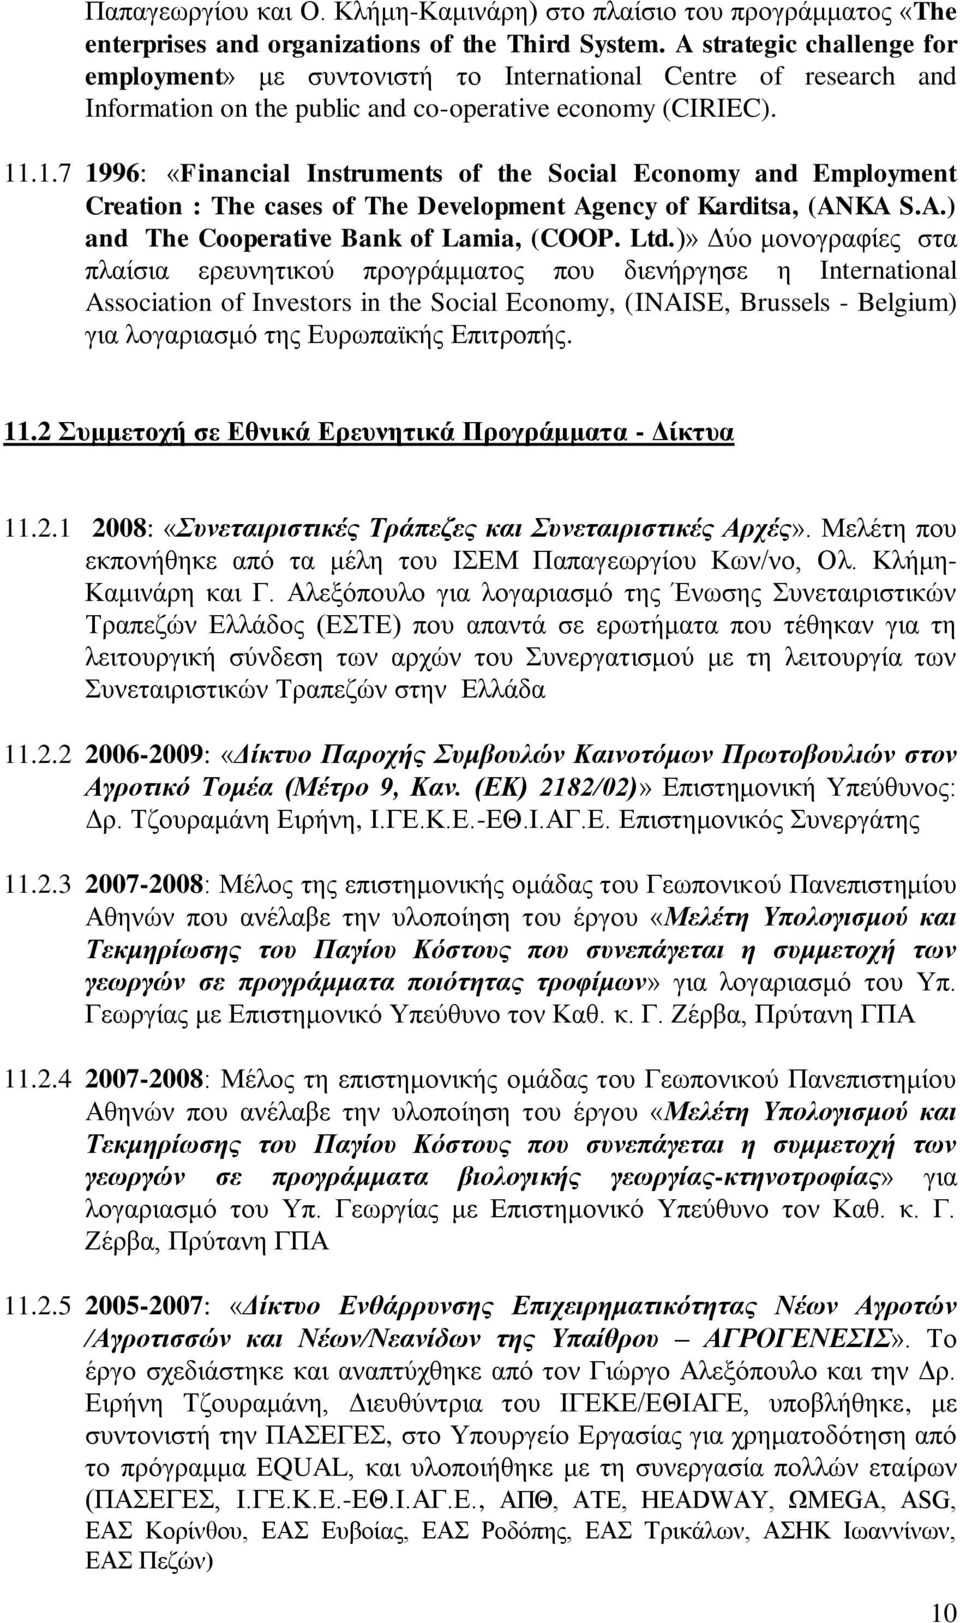 .1.7 1996: «Financial Instruments of the Social Economy and Employment Creation : The cases of The Development Agency of Karditsa, (ANKA S.A.) and The Cooperative Bank of Lamia, (COOP. Ltd.